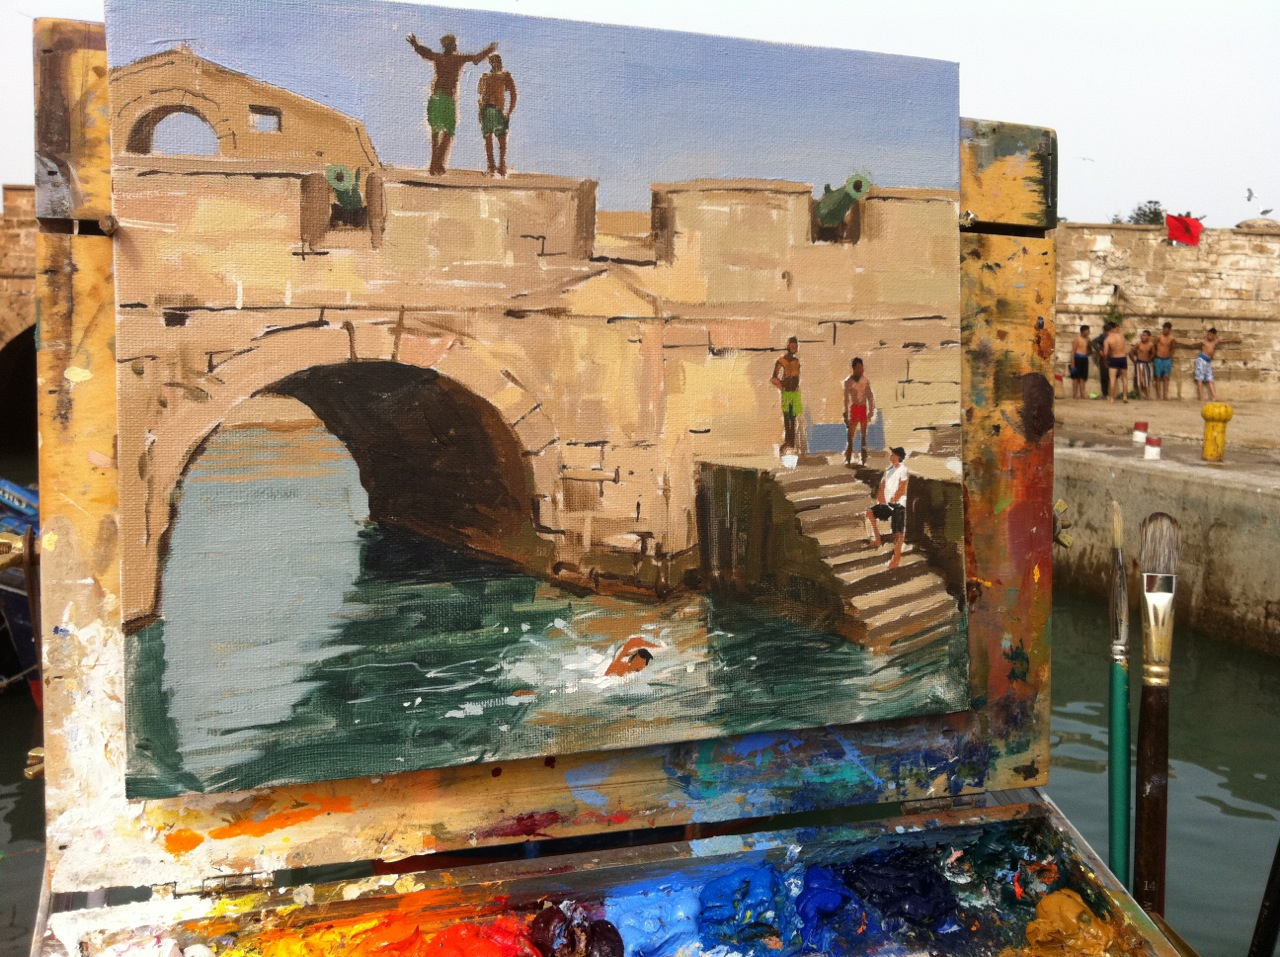 Haidee jo plein air painter of the moment jackson 39 s art for Call for mural artists 2014